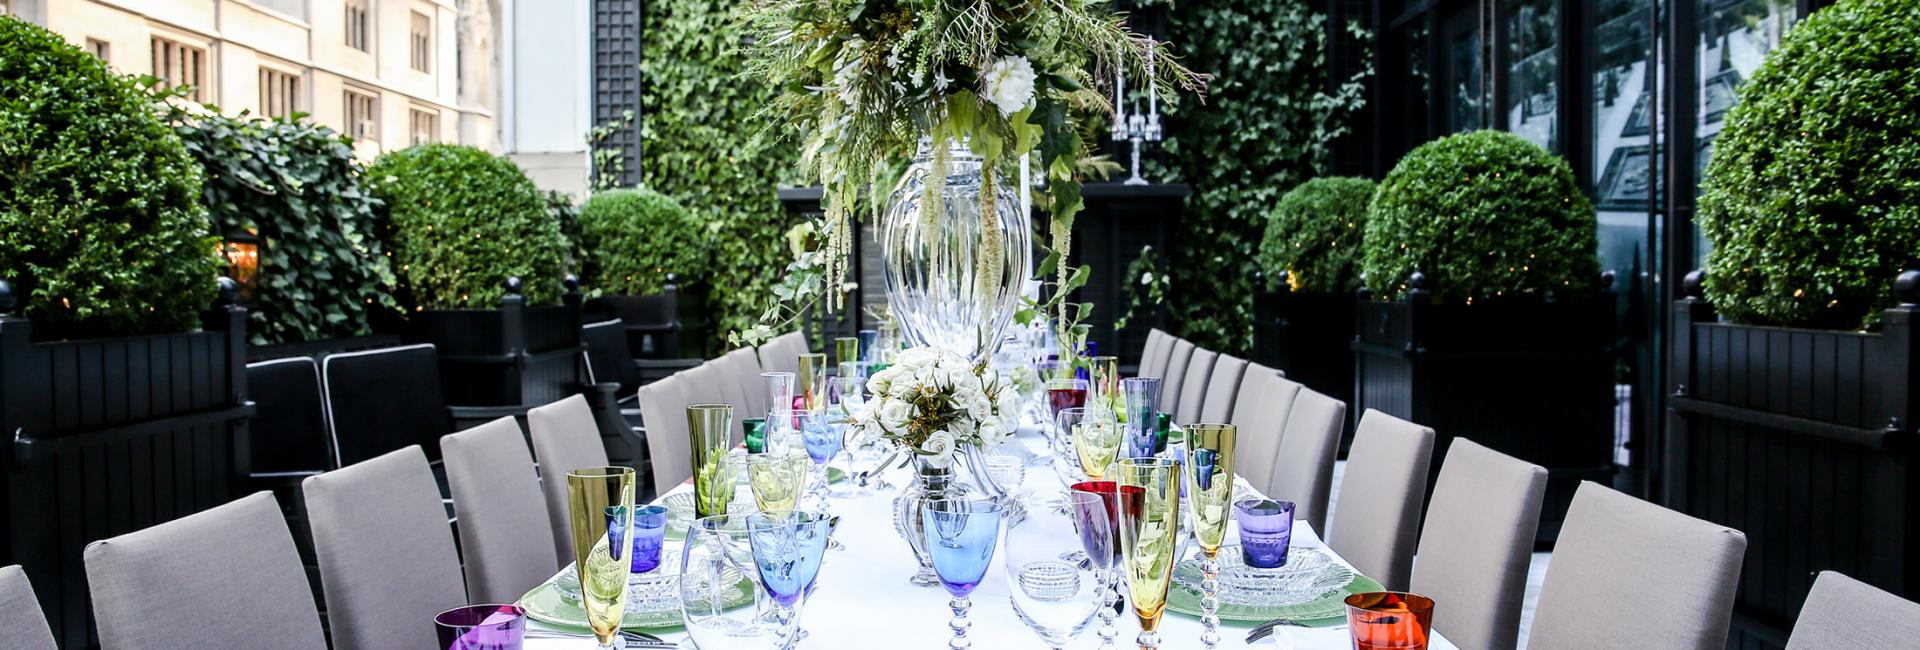 A long outdoor table set with colorful glassware and flowers